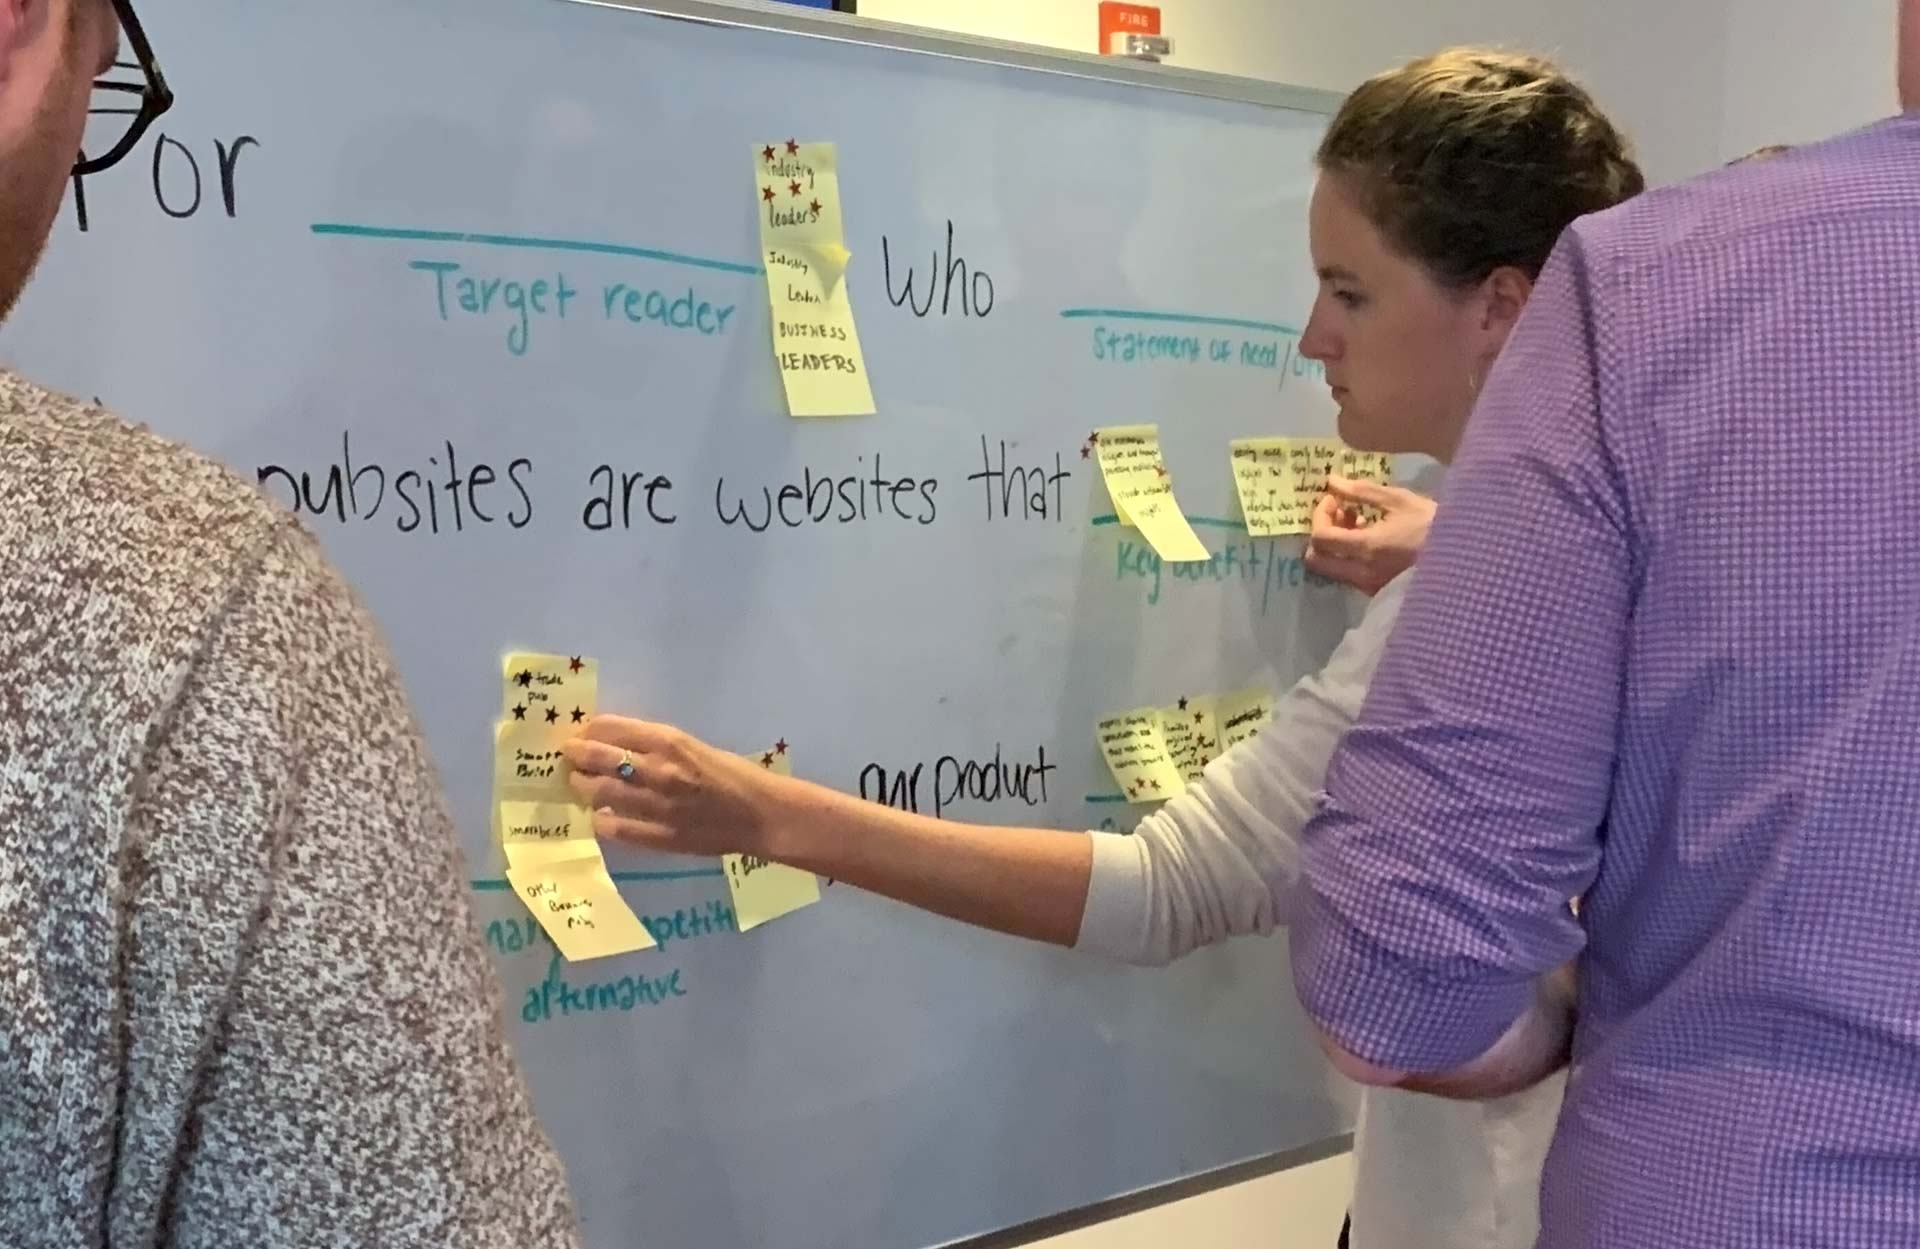 An Industry Dive executive posting a sticky note on a white board during the 'Working product vision statement' exercise.